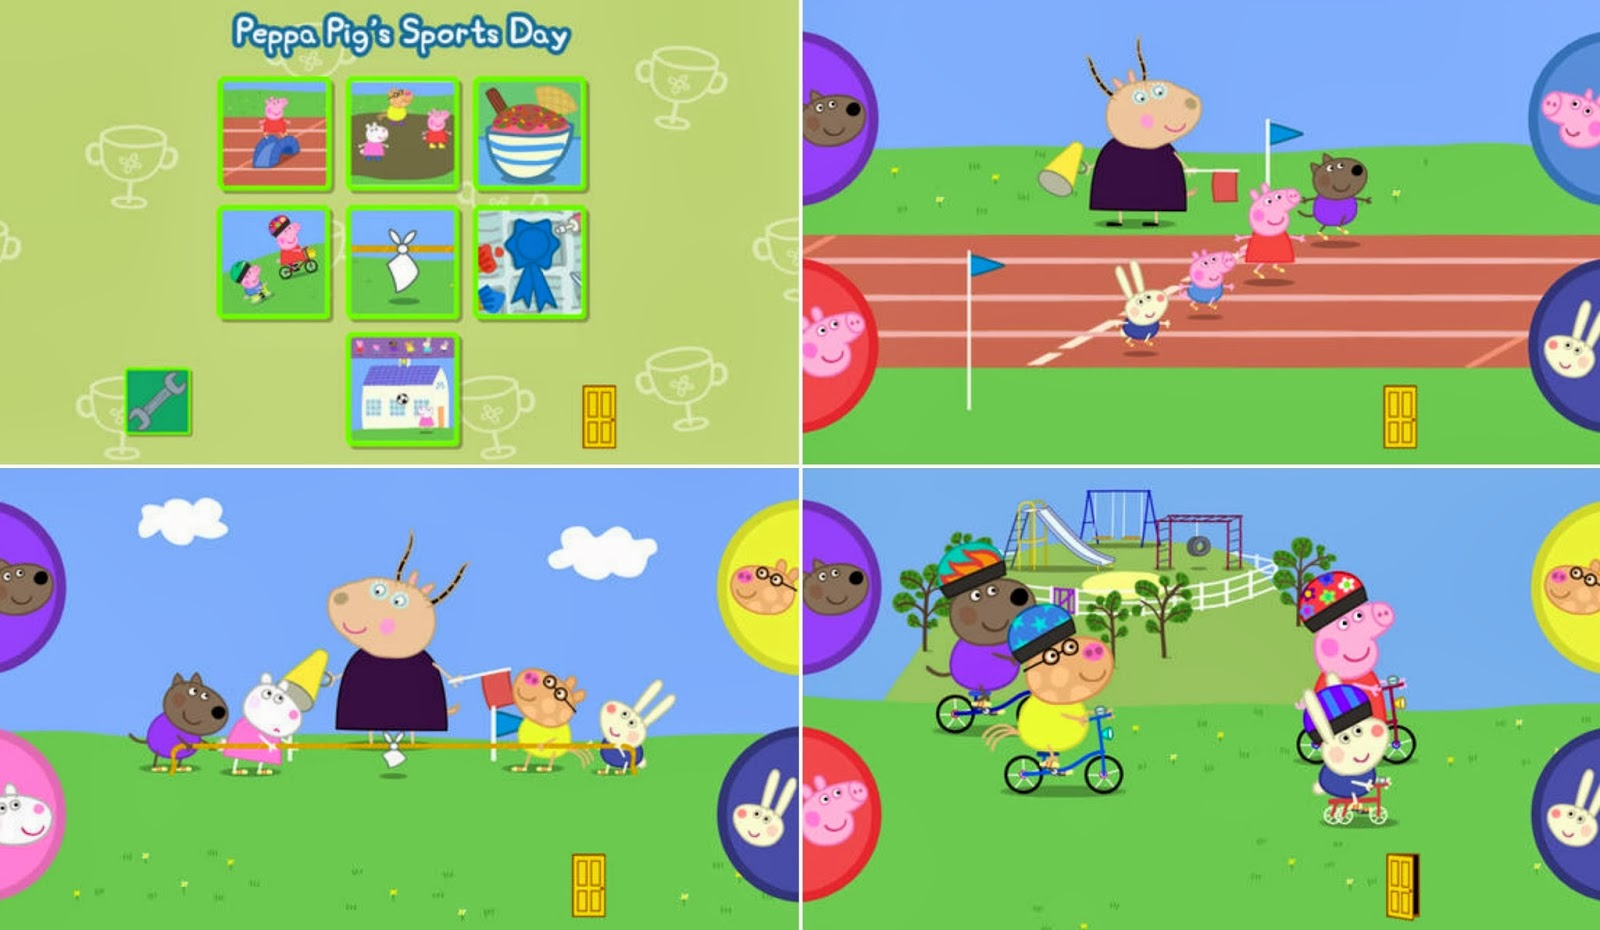 Peppa Pig's Sports Day app